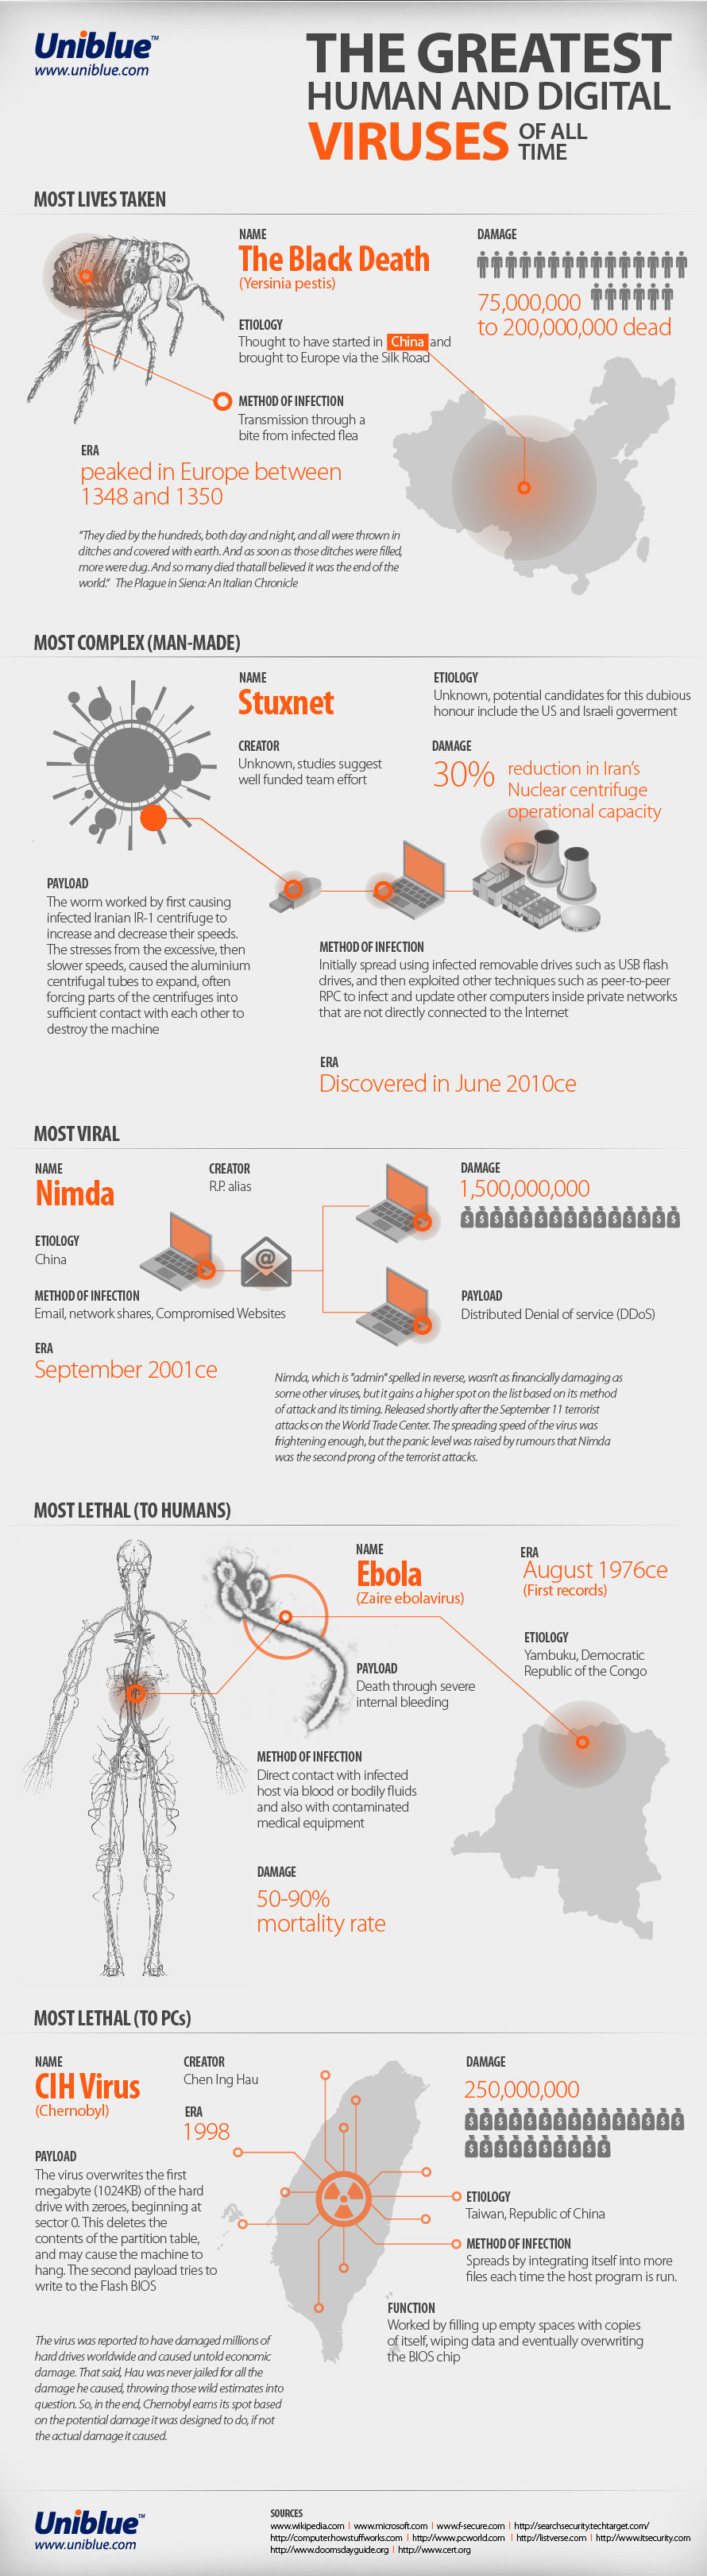 The-Greatest-Human-And-Digital-Viruses-infographic